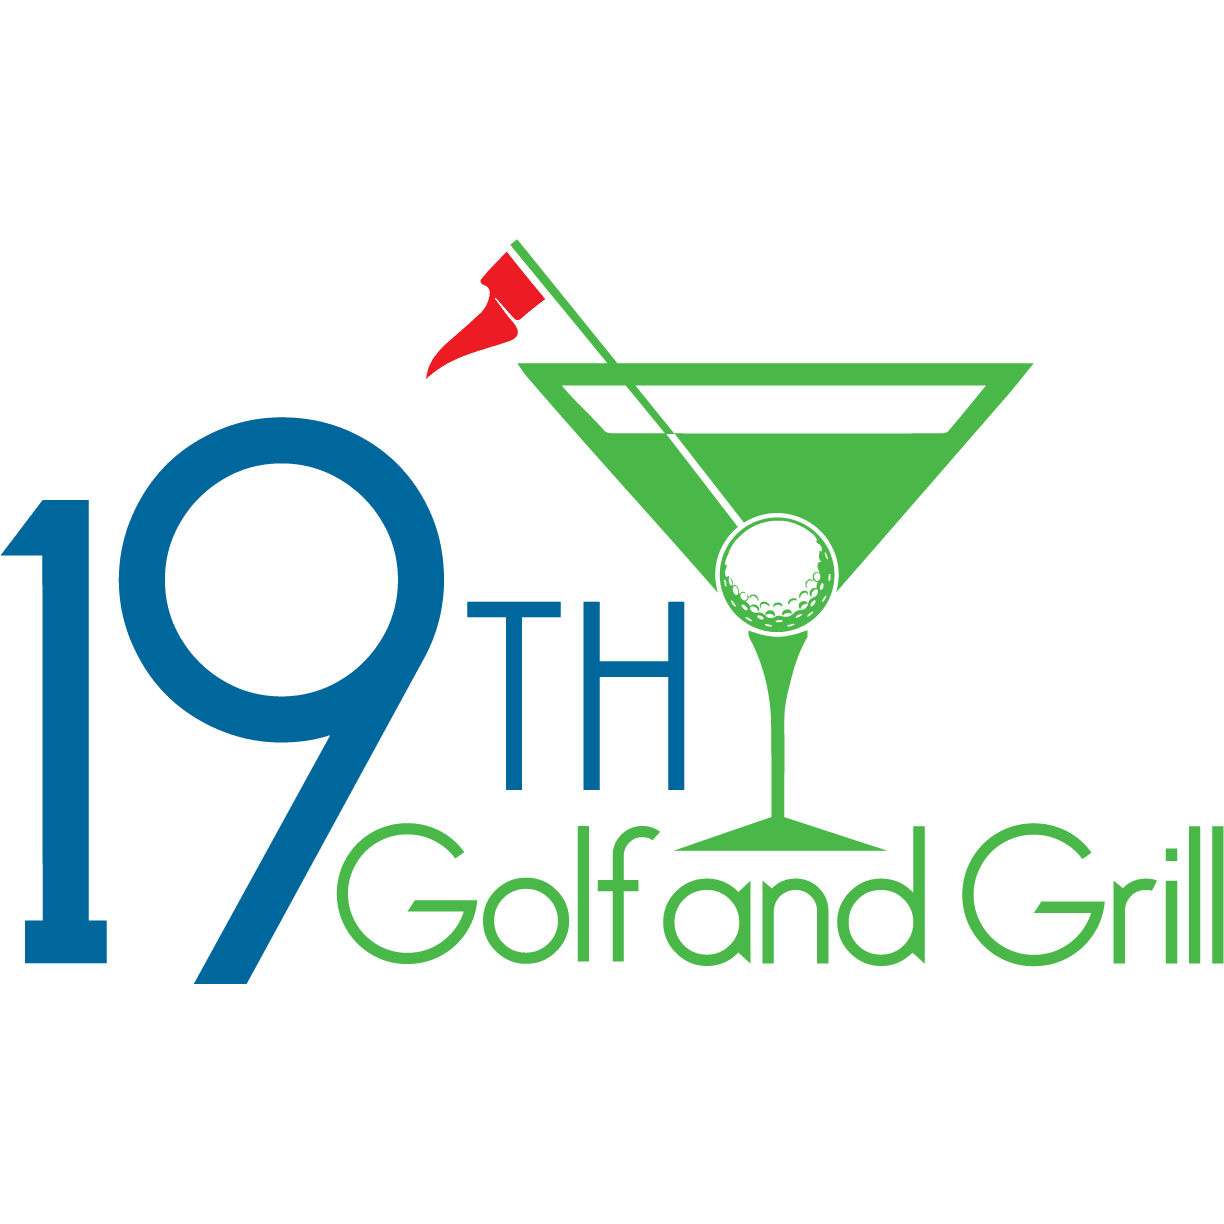 19th Golf and Grill